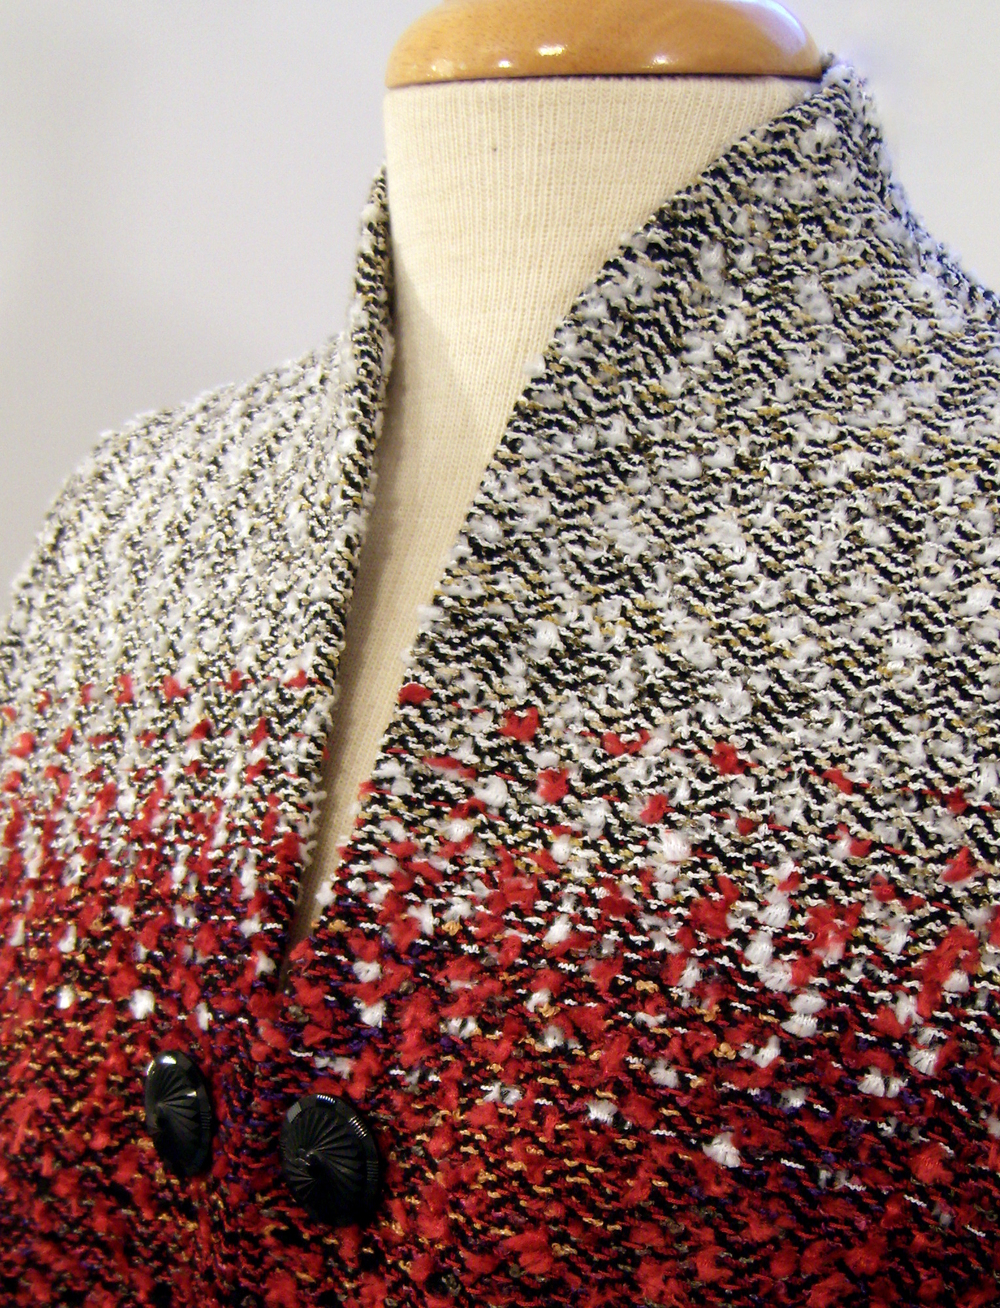 Hand Woven Jacket, Kathleen Weir-West, Fiber Art 12.JPG